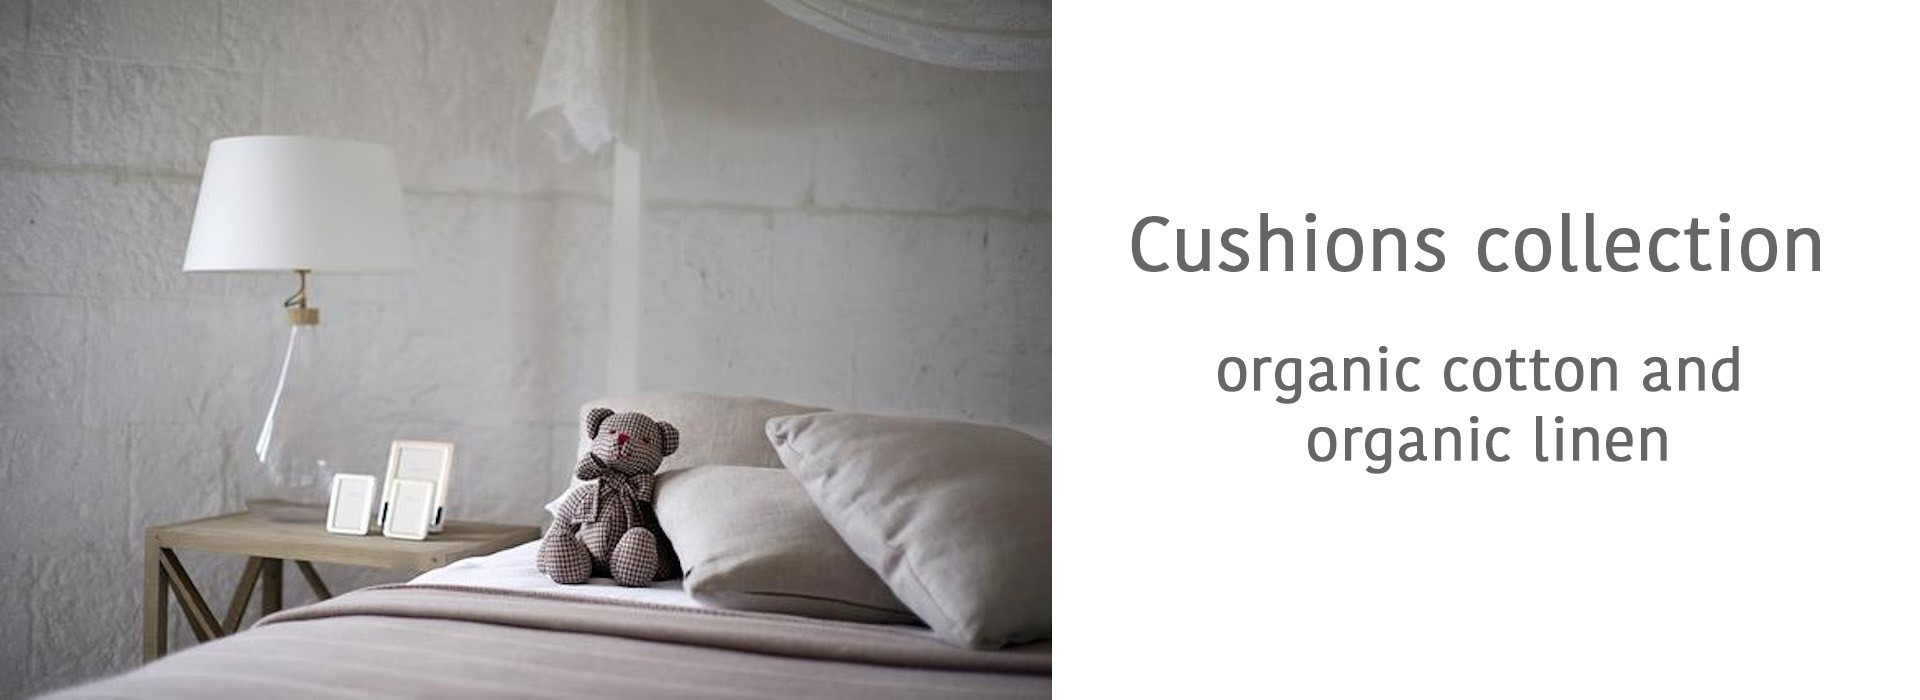 100% NATURAL ORGANIC COTTON OR ORGANIC LINEN LATEX PILLOWS.